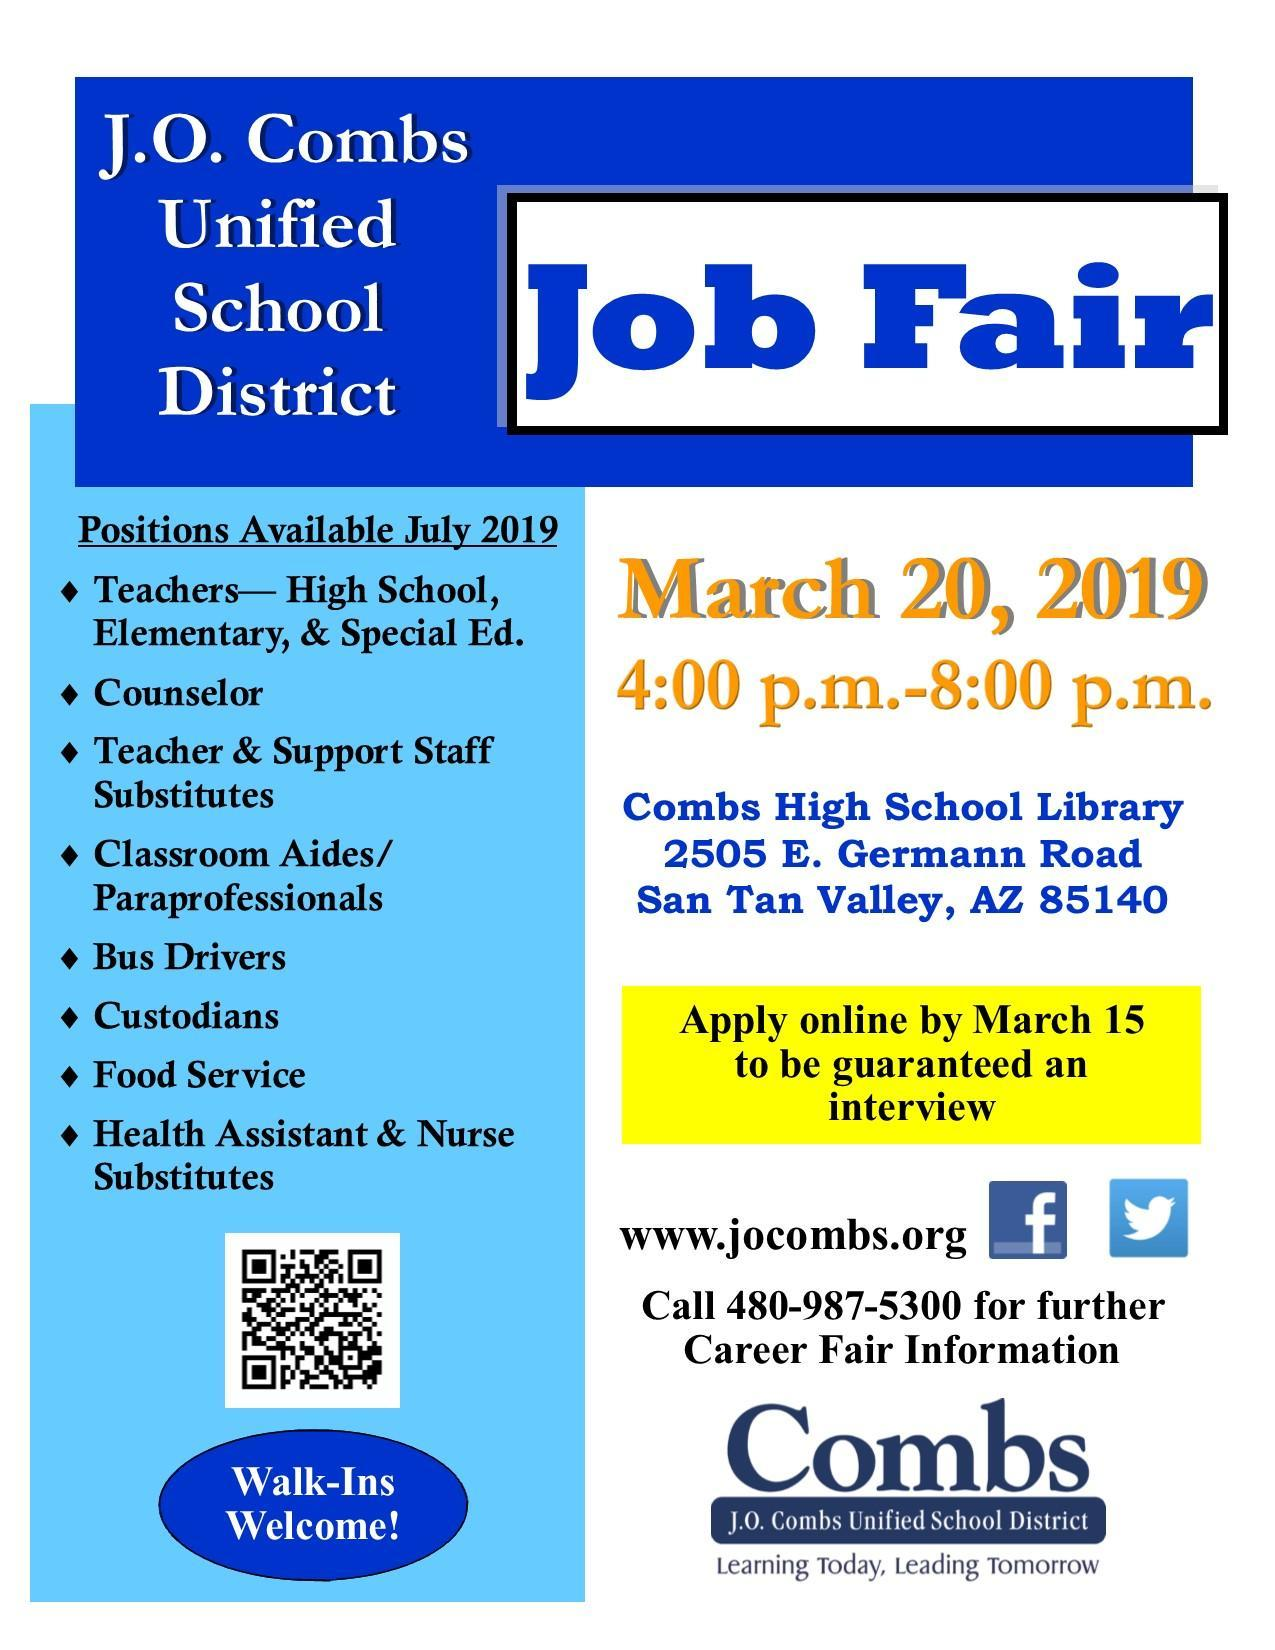 J.O. Combs Job Fair Fyler